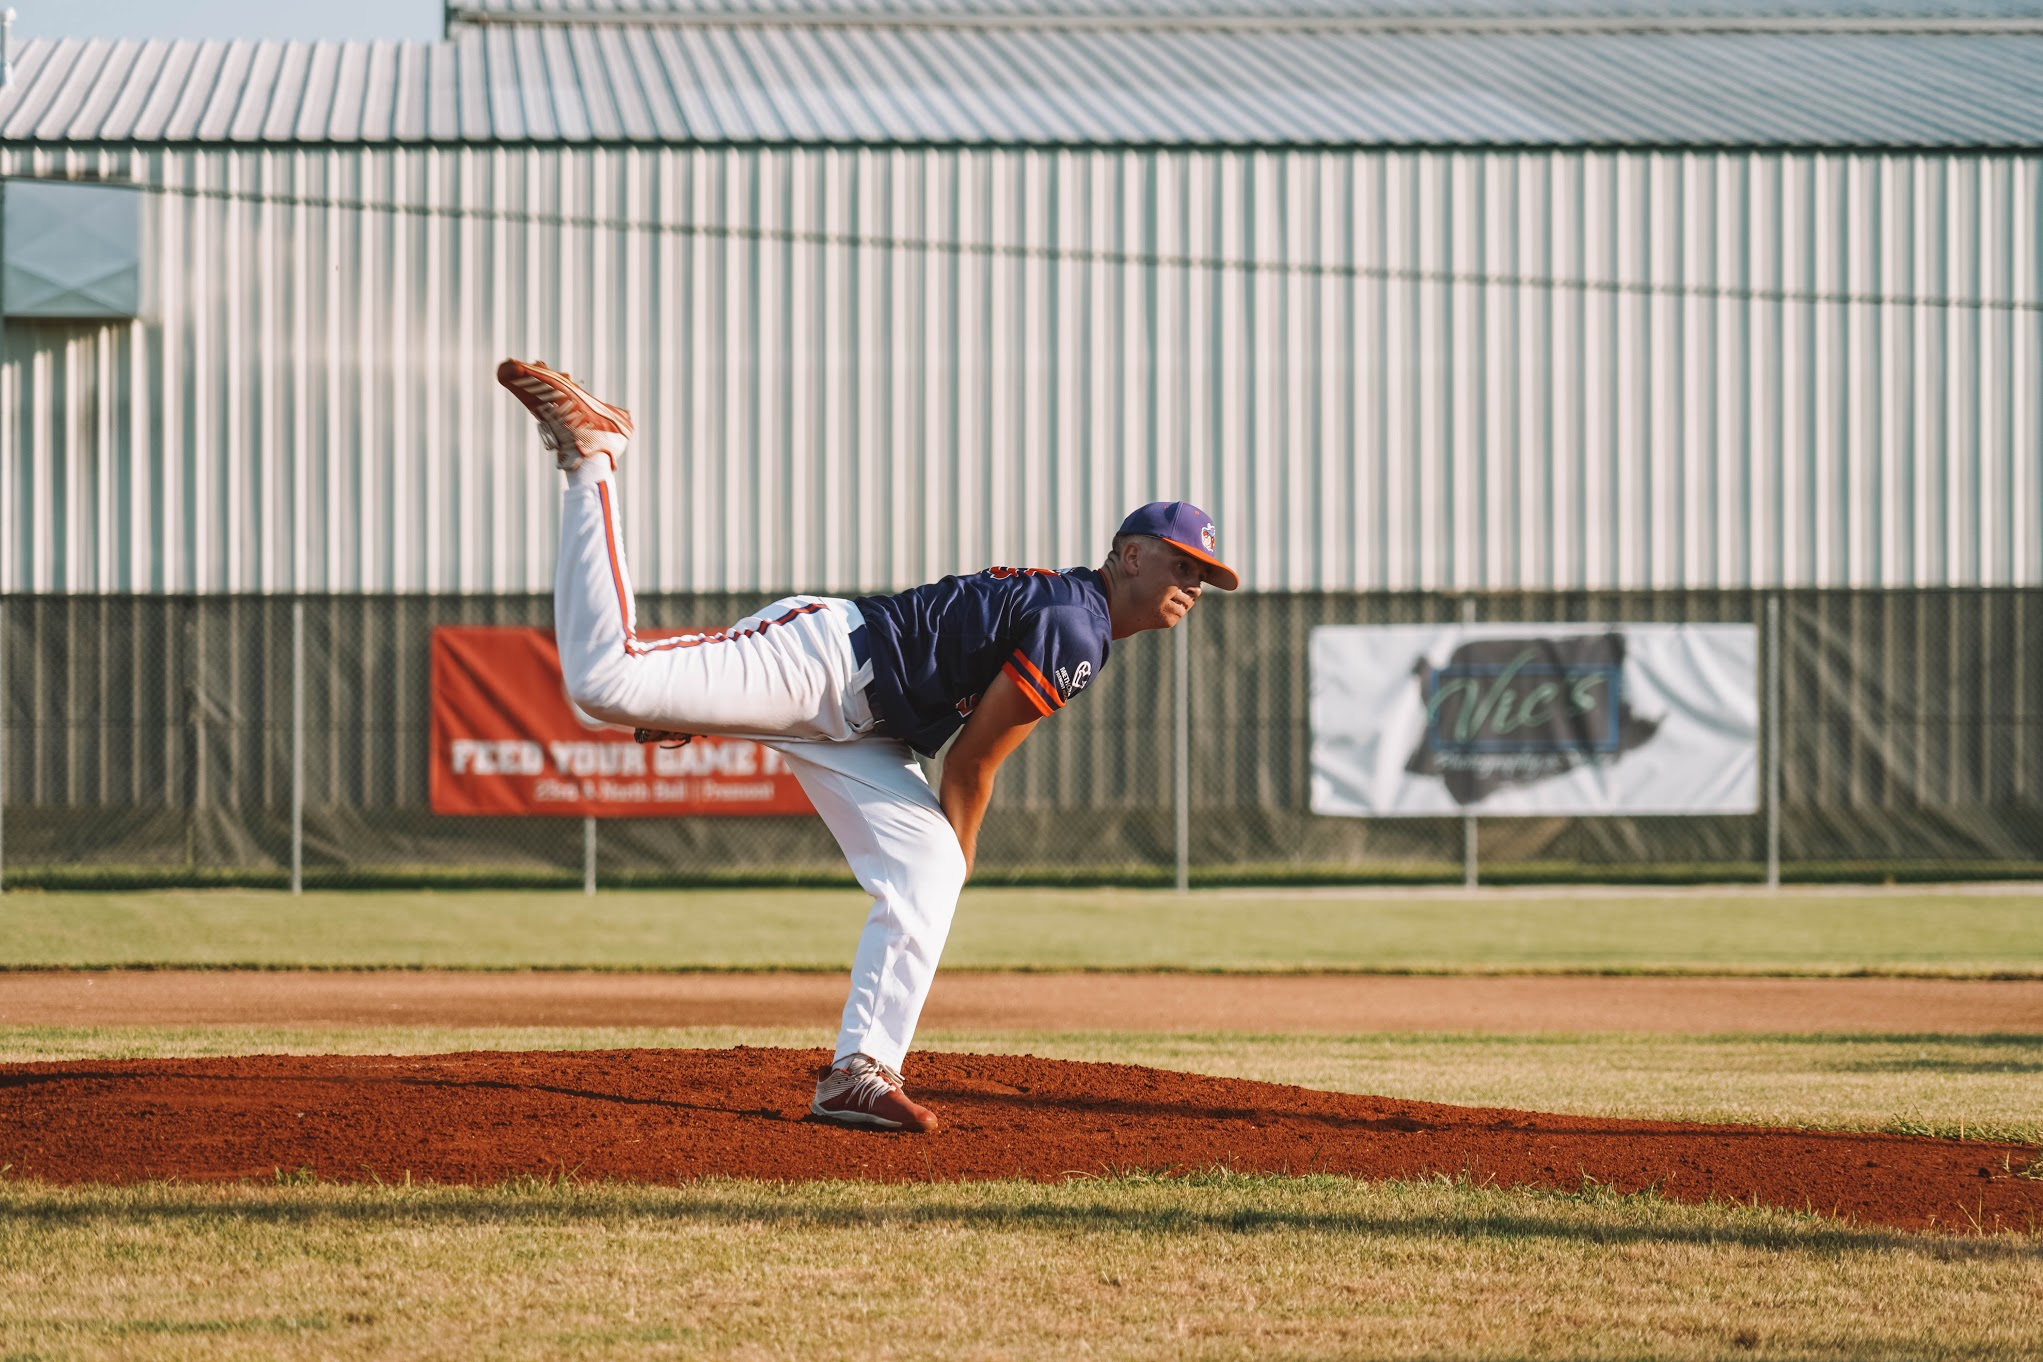 Huskers right-handed pitcher Quinn Mason throwing a pitch for the Fremont Moo